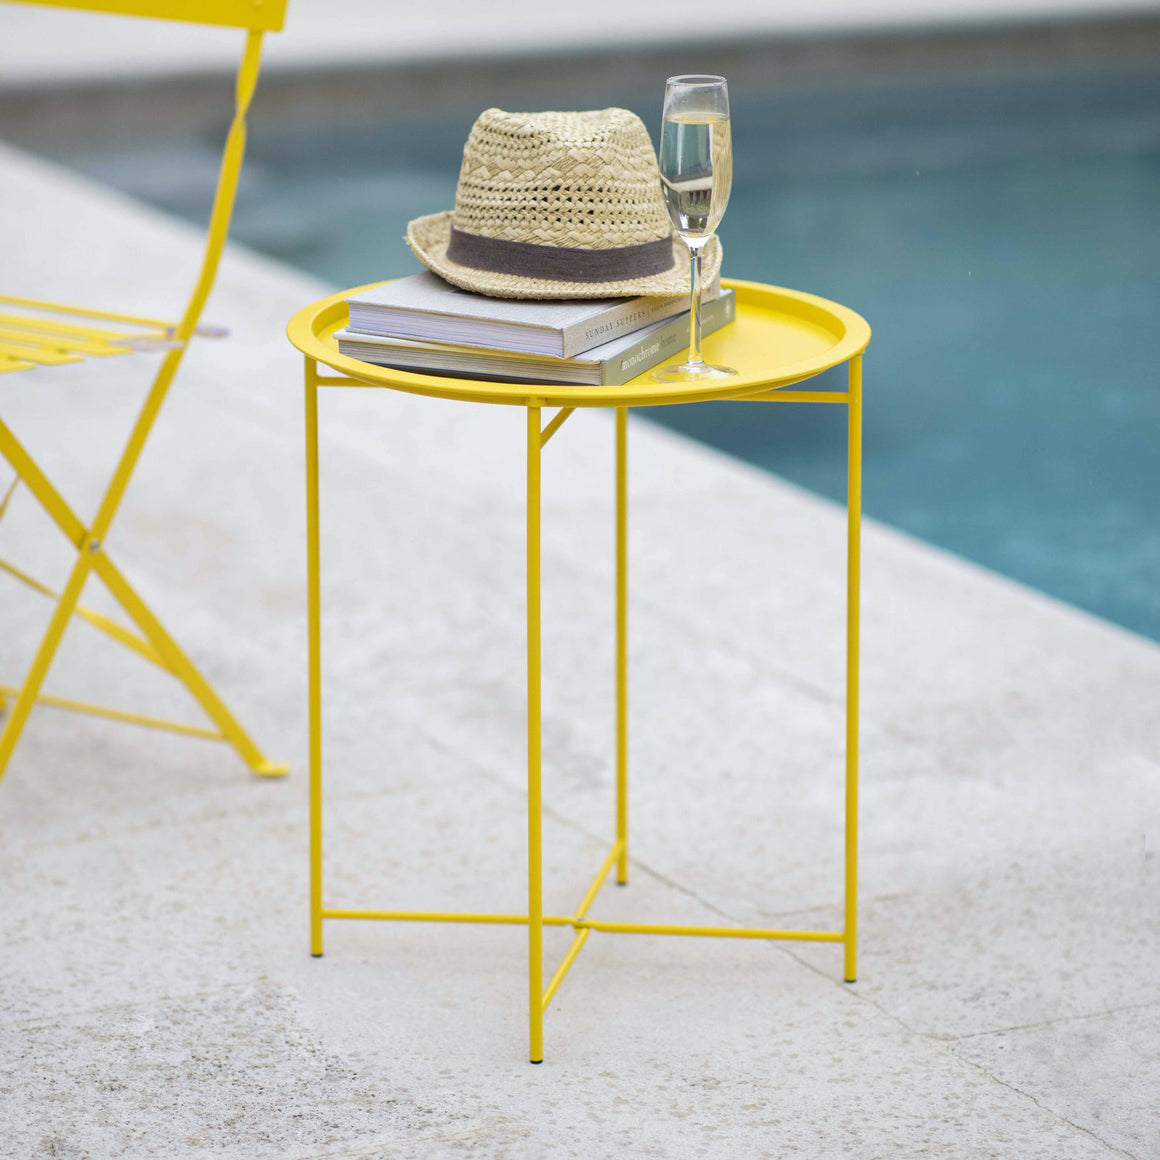 RIVE DROITE BISTRO TRAY TABLE - LEMON